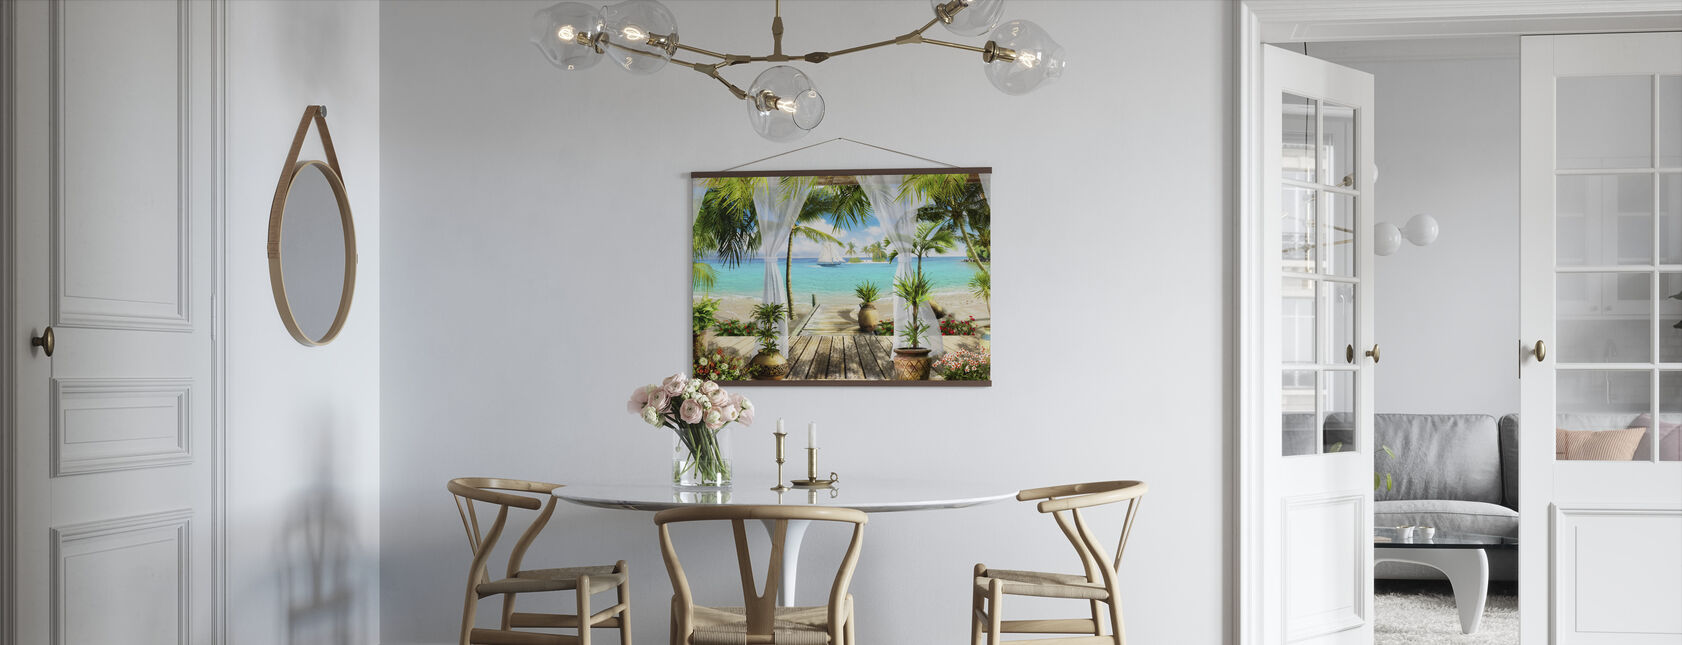 Bungalow on the Beach - Poster - Kitchen